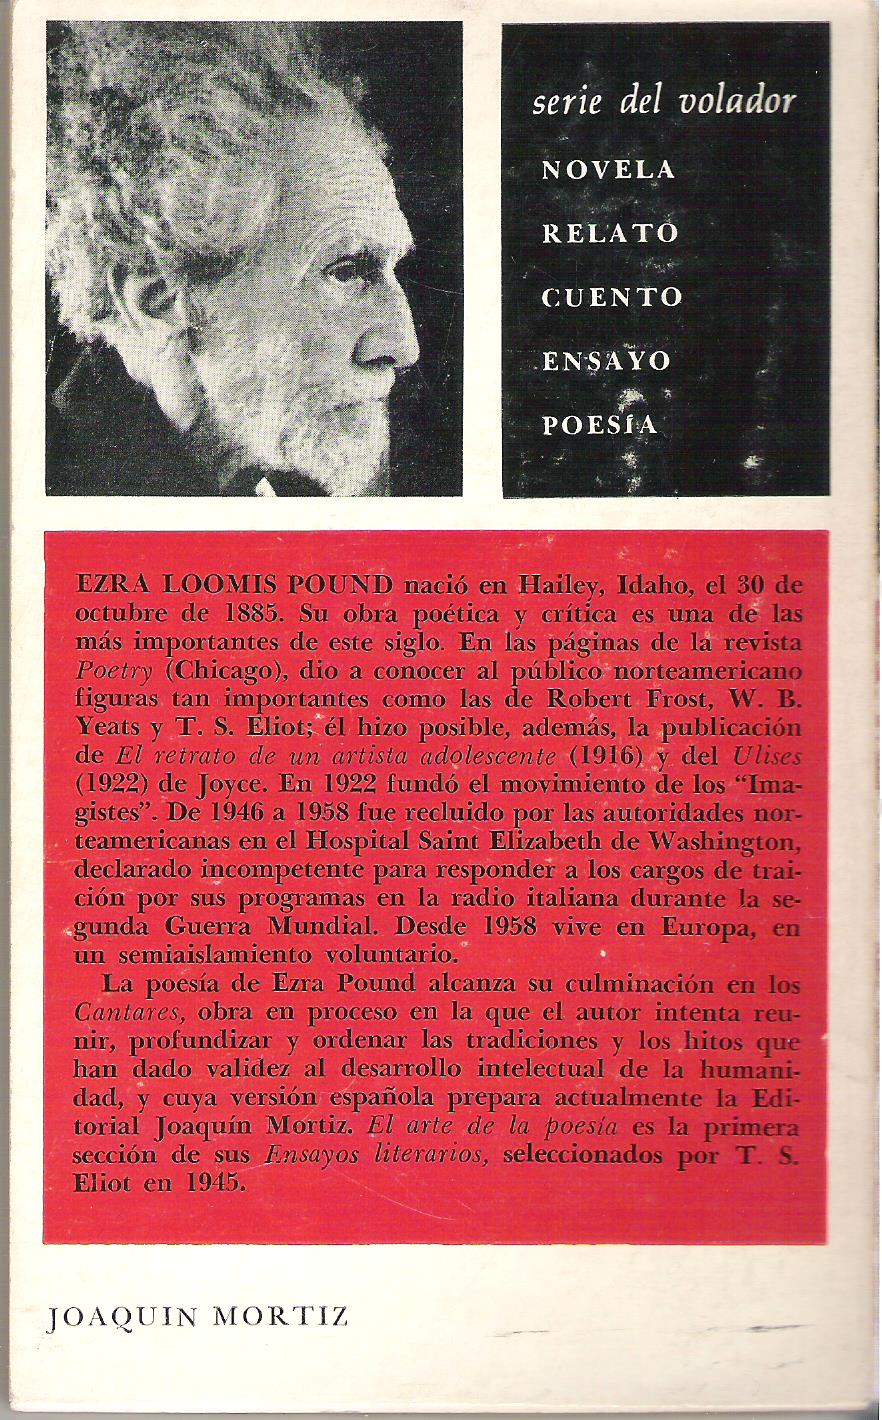 literary essays of ezra pound new directions